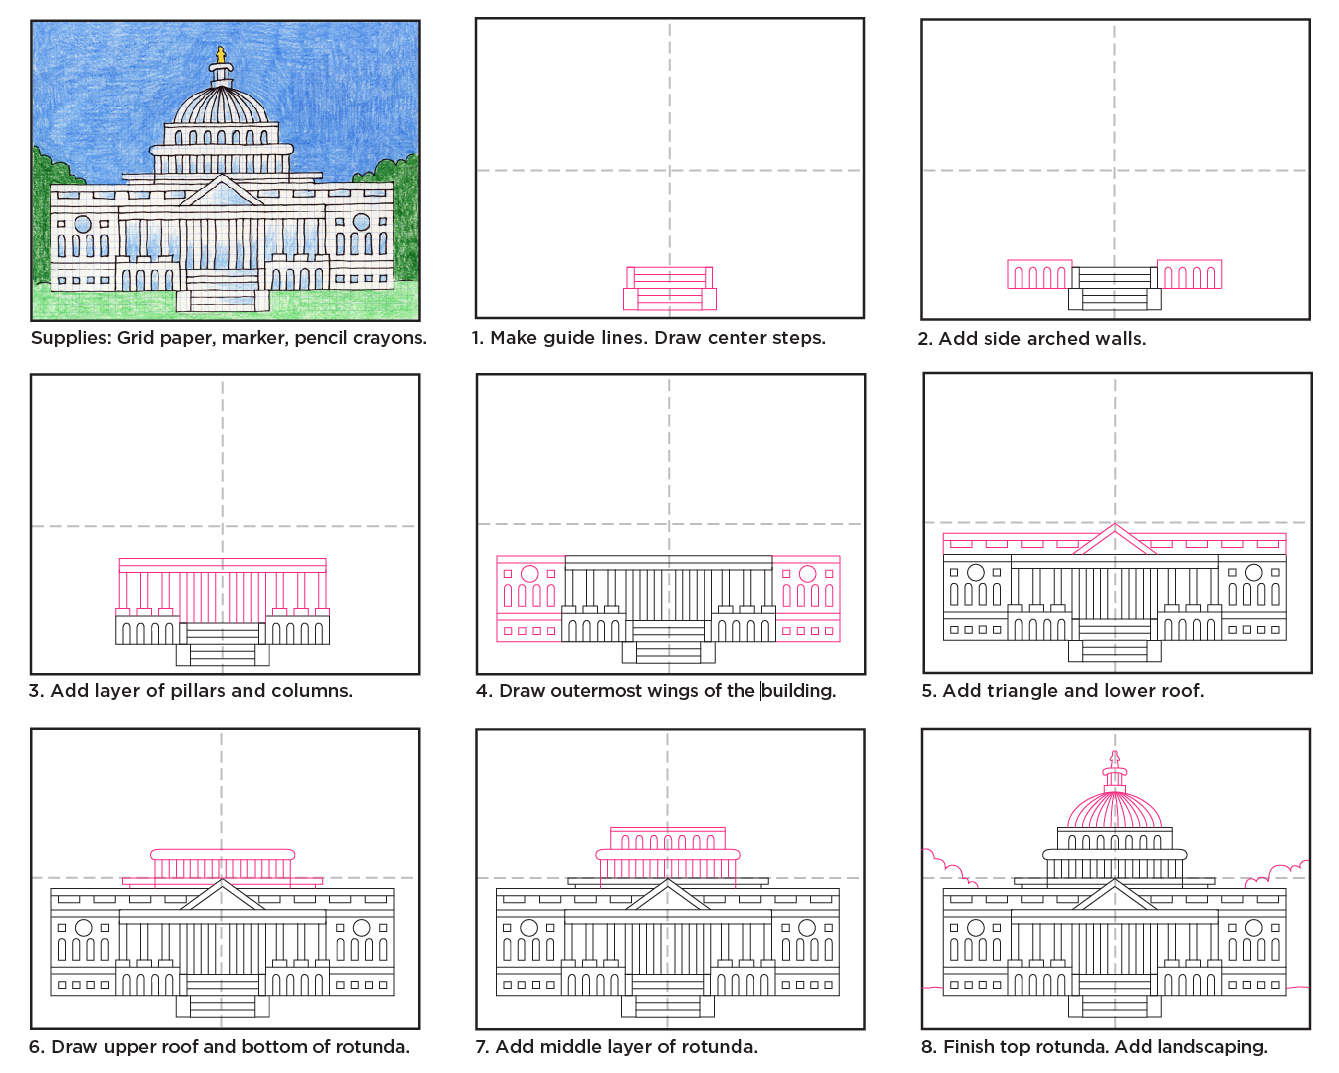 Us capitol art projects for kids for Building a house step by step